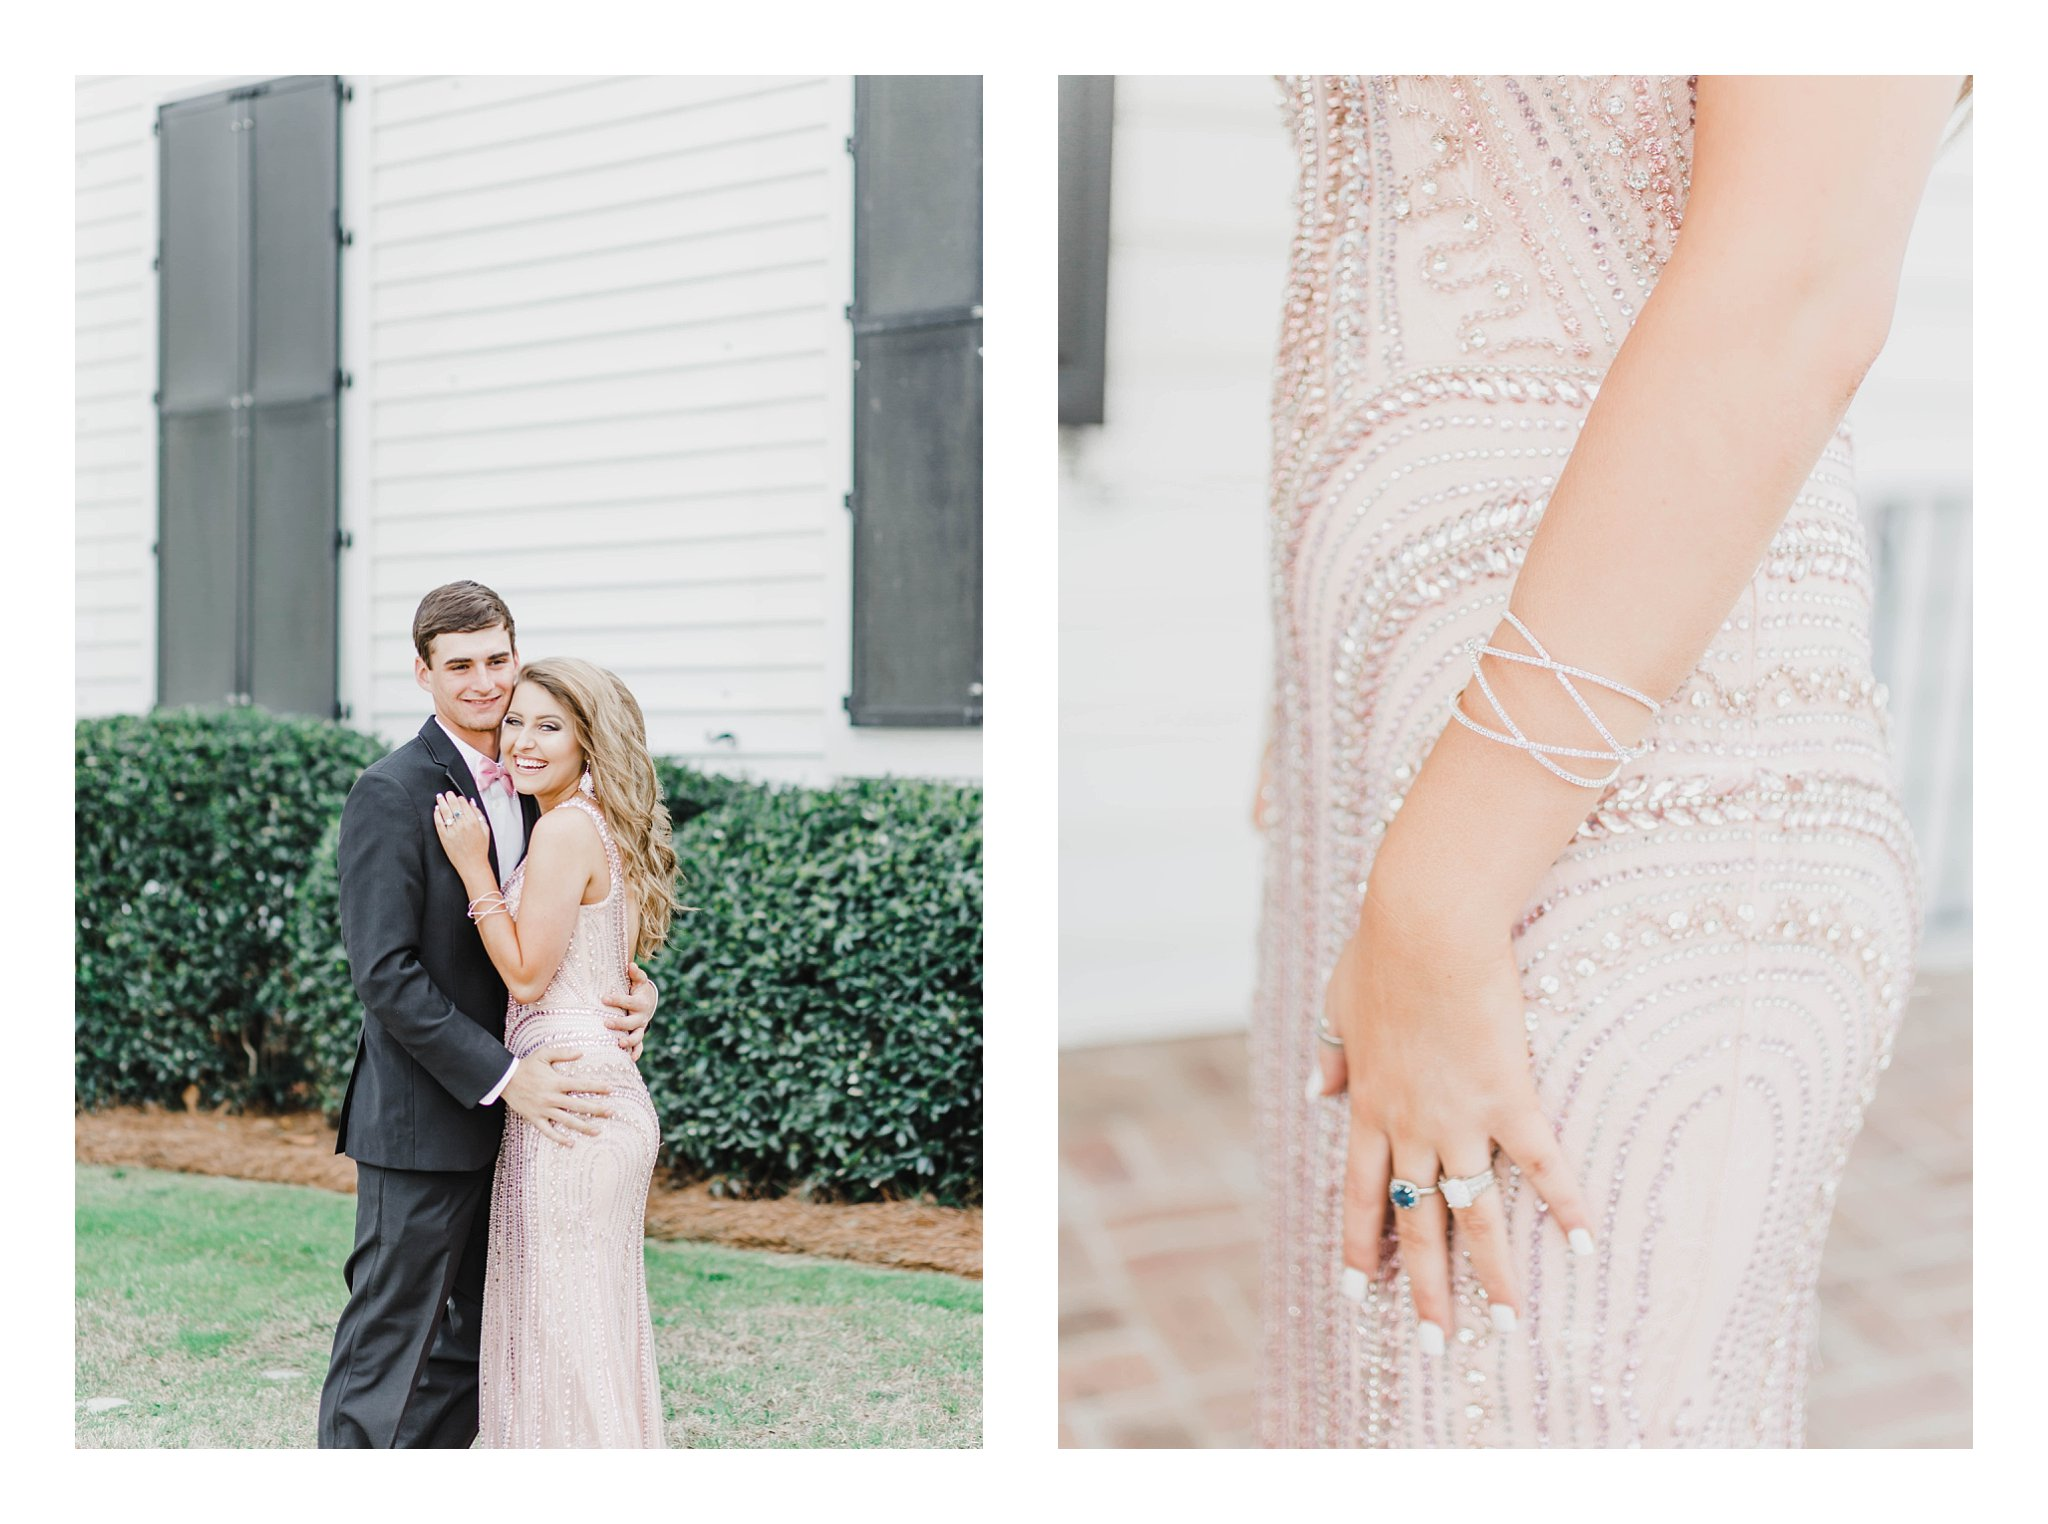 spring-belin-methodist-beaded-gown-murrells-inlet-sc-prom-photos-_0018.jpg